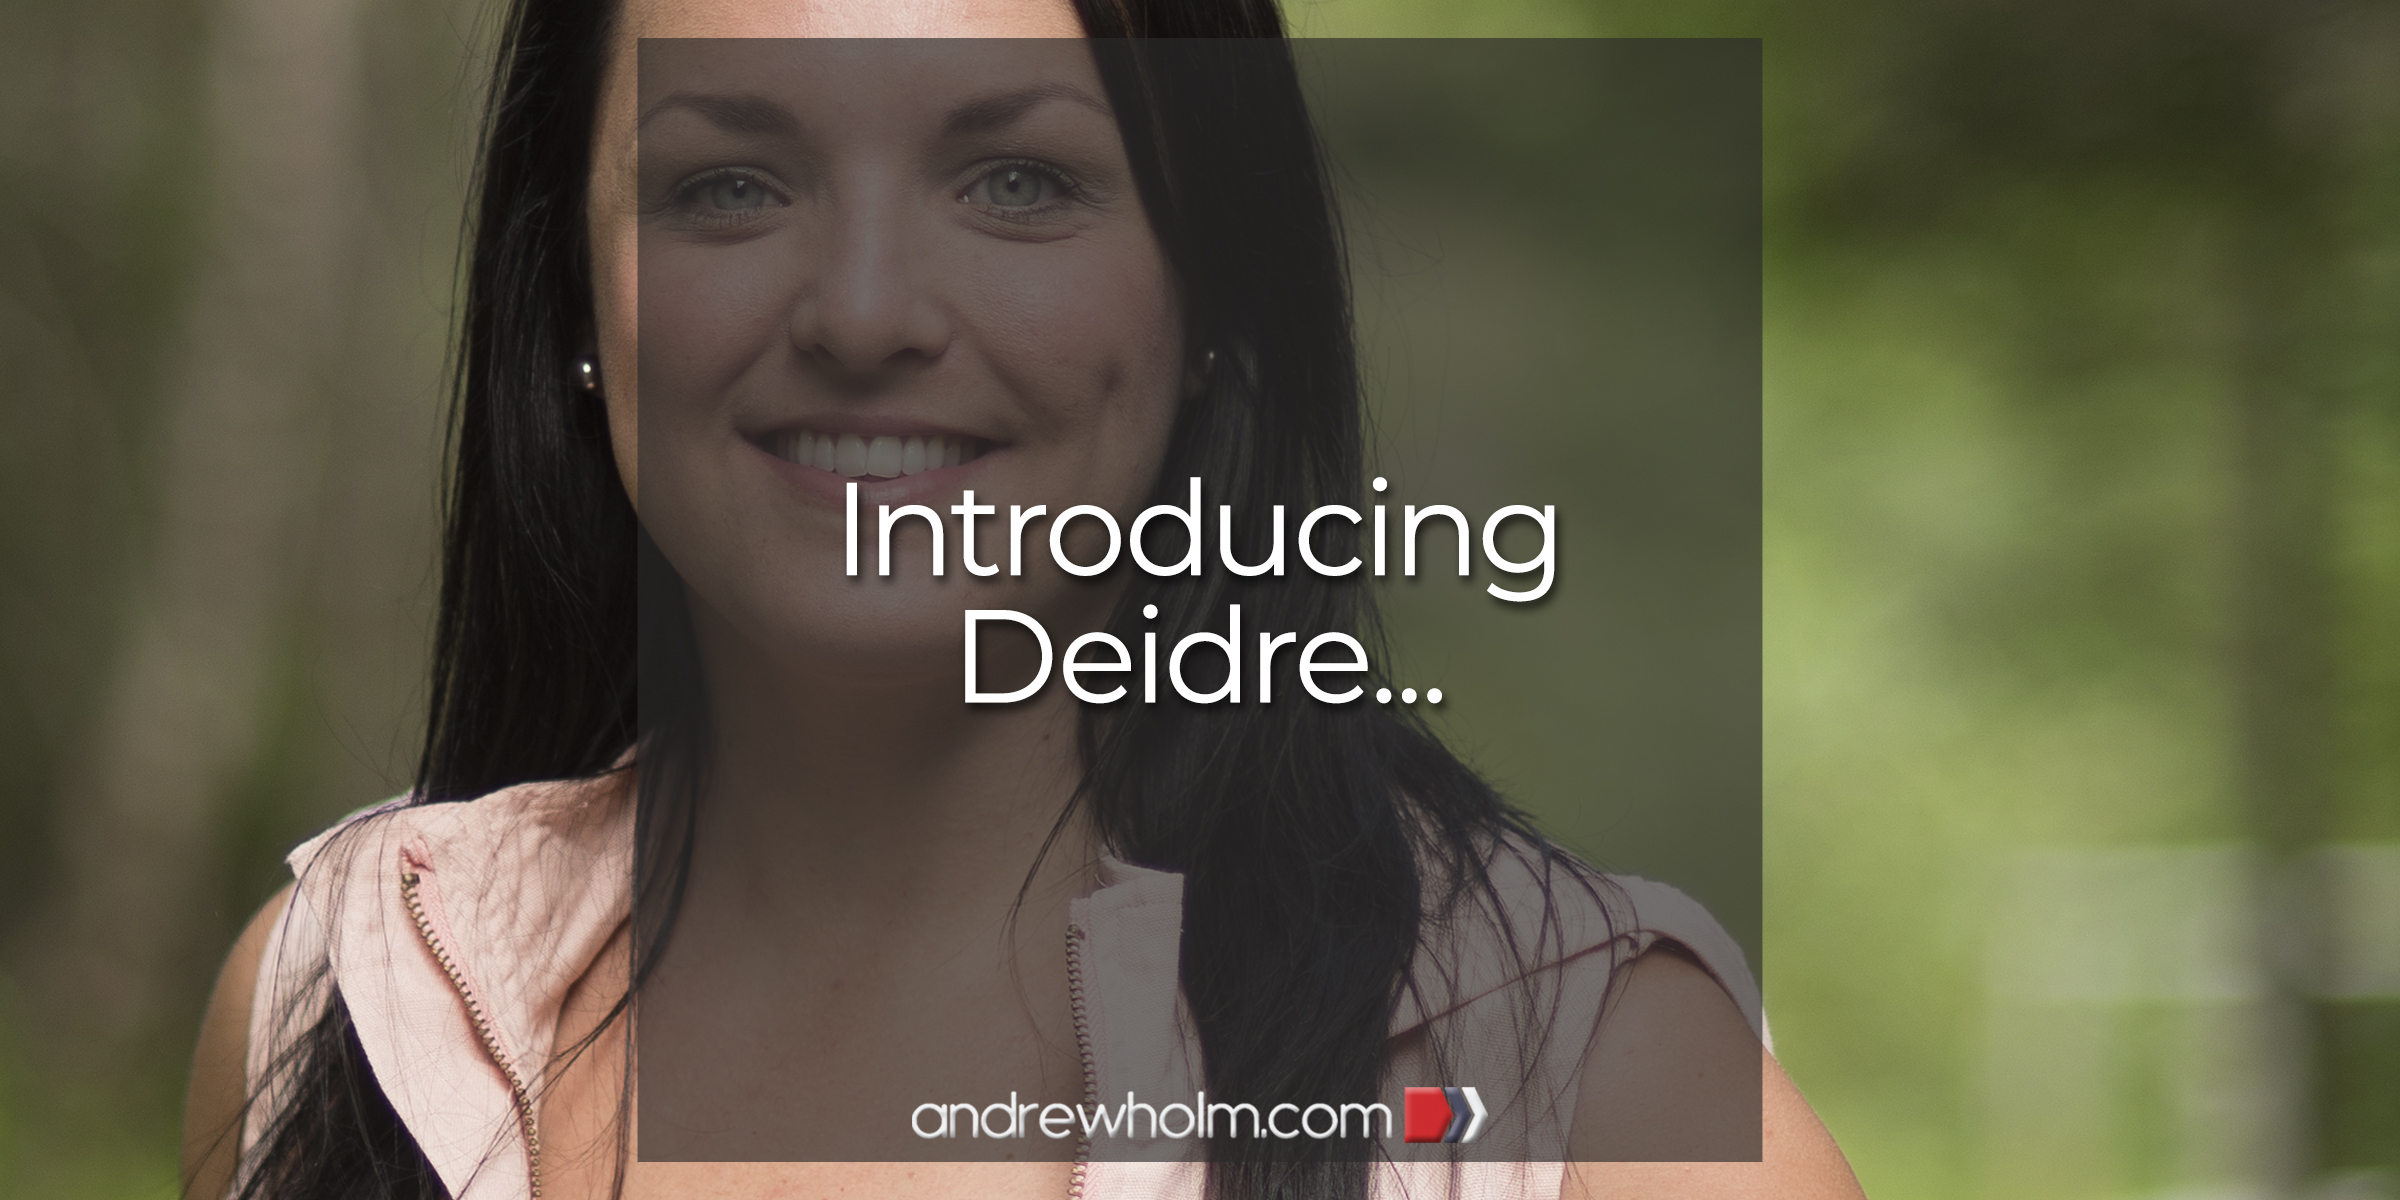 Introducing Deidre